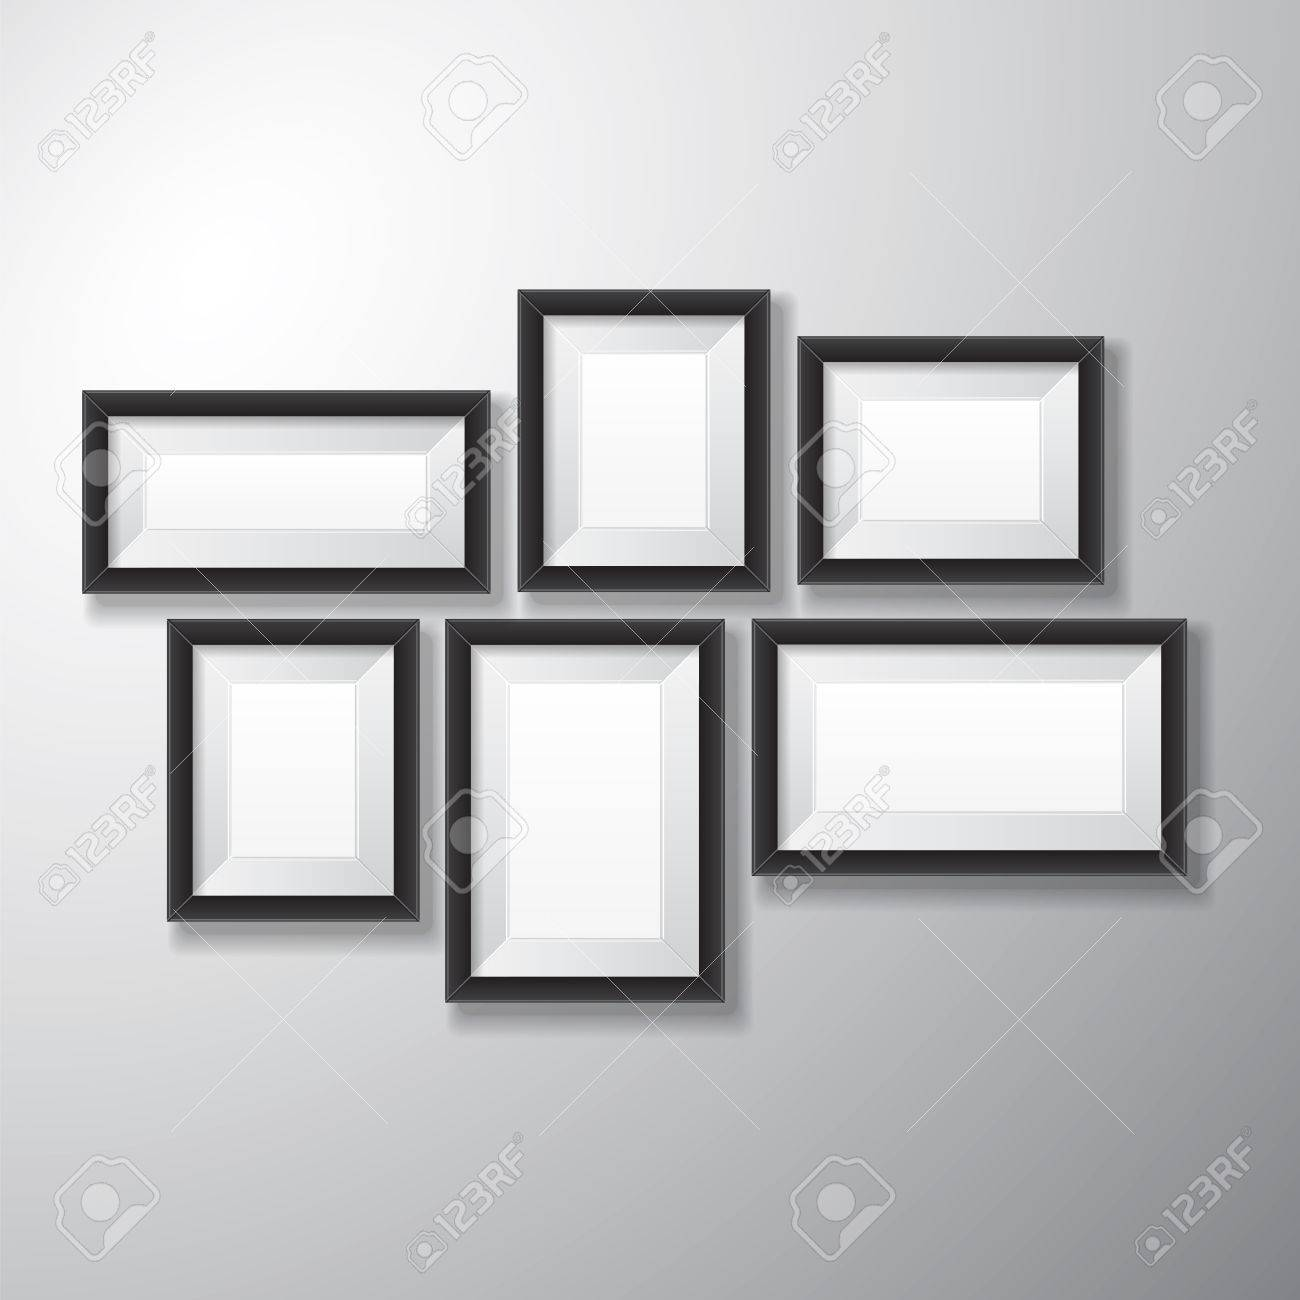 variety sizes of realistic black picture frames with empty space isolated on white background for presentation